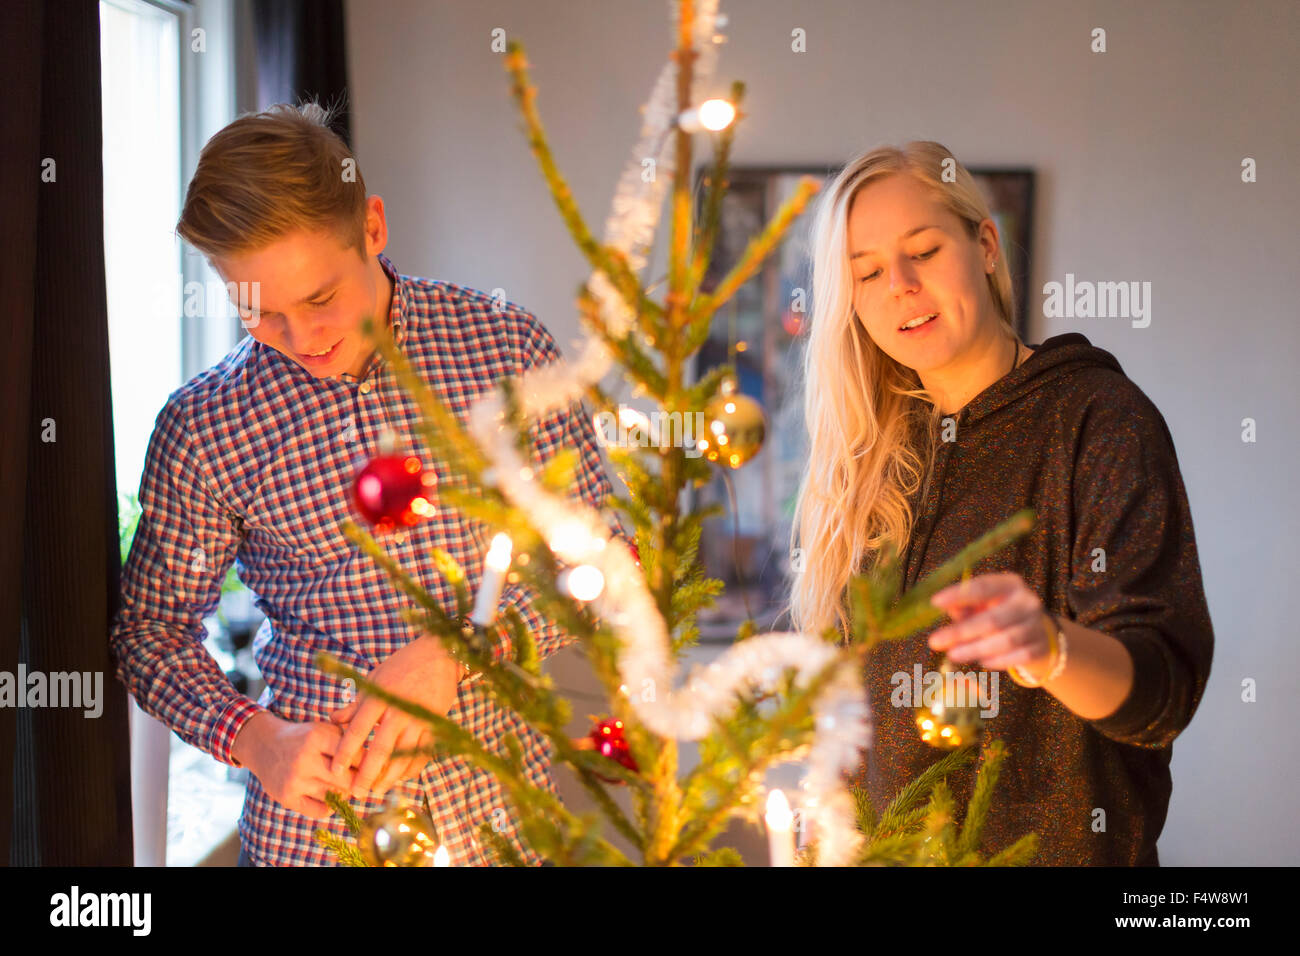 Couple decorating Christmas Tree Photo Stock